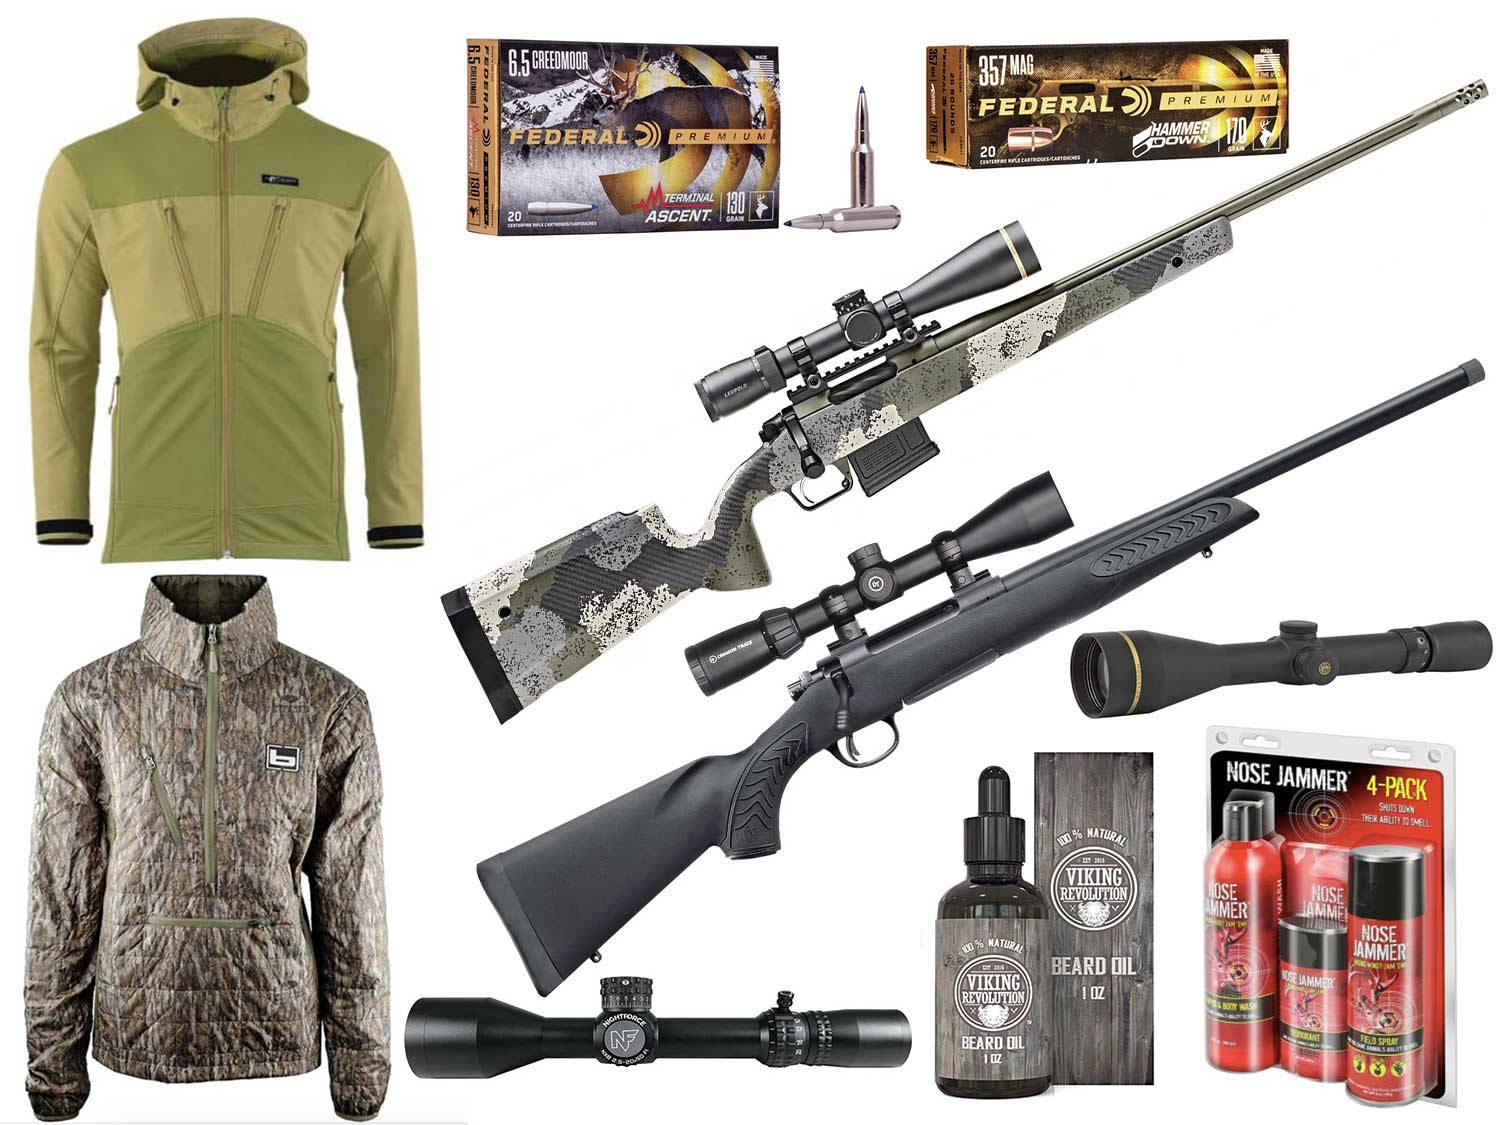 Collage of hunting gear